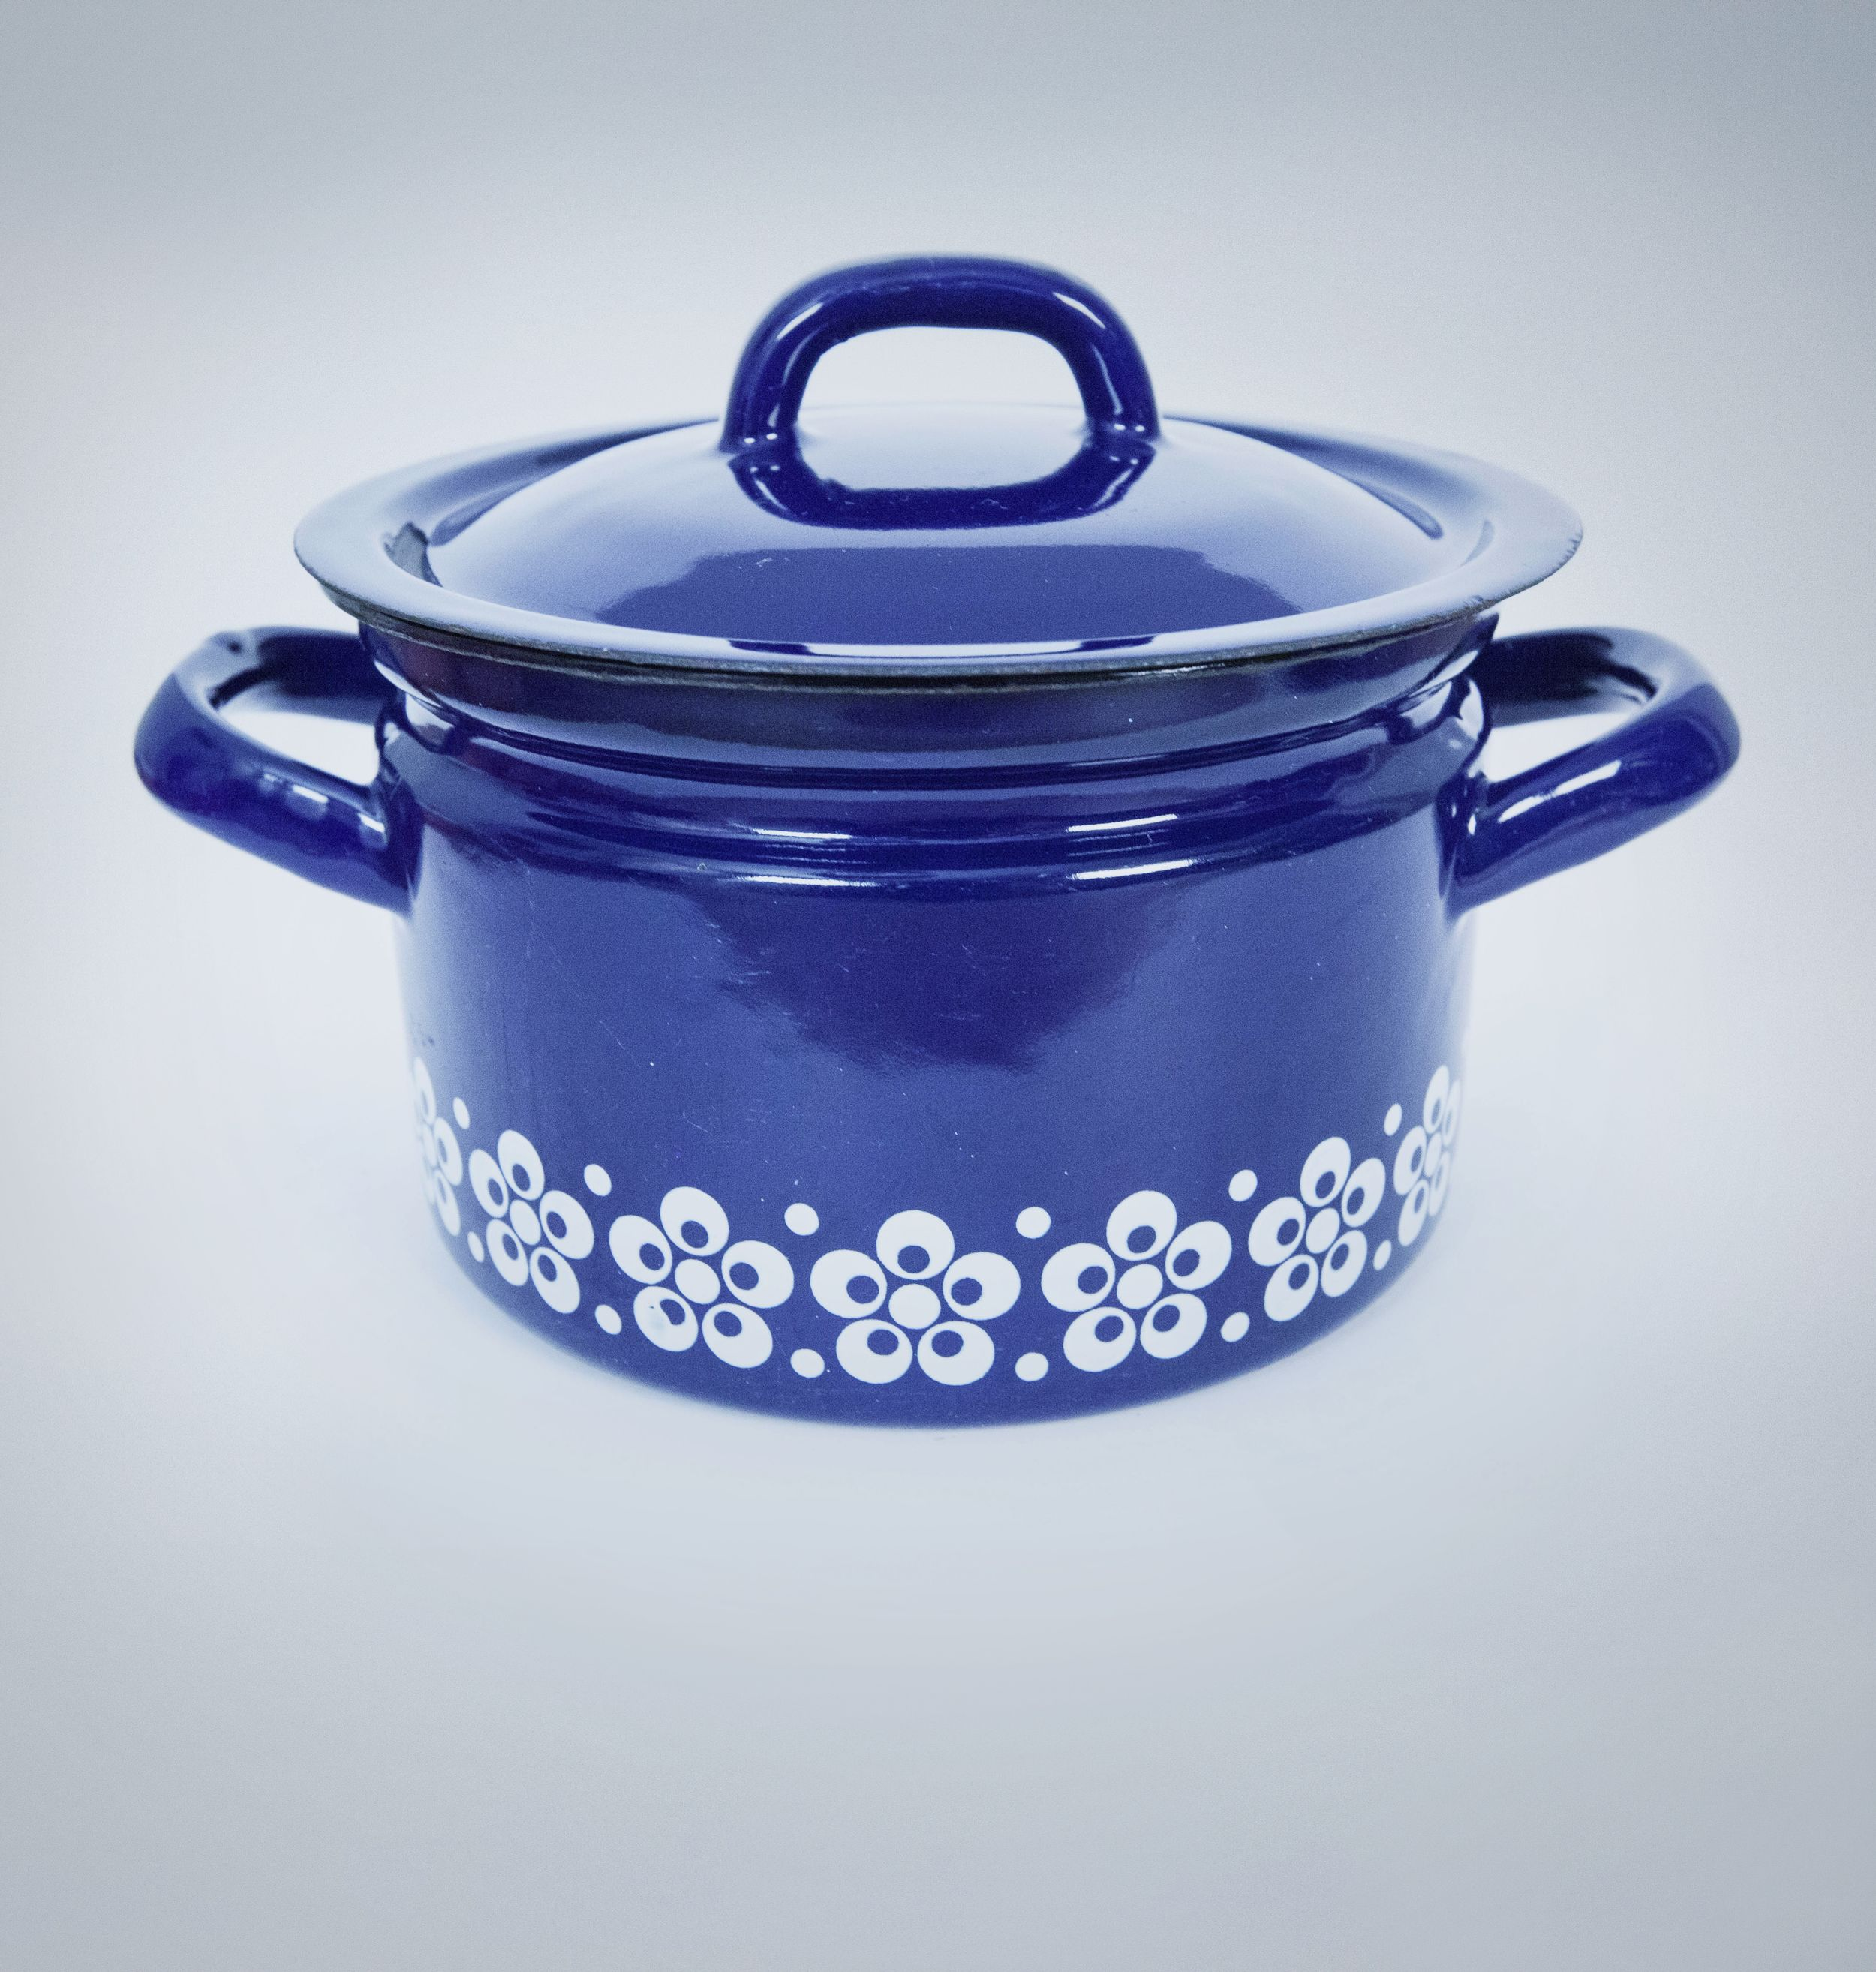 Blue Decorative Enamel Cooking Pot Yugoslavian Styling This Is A